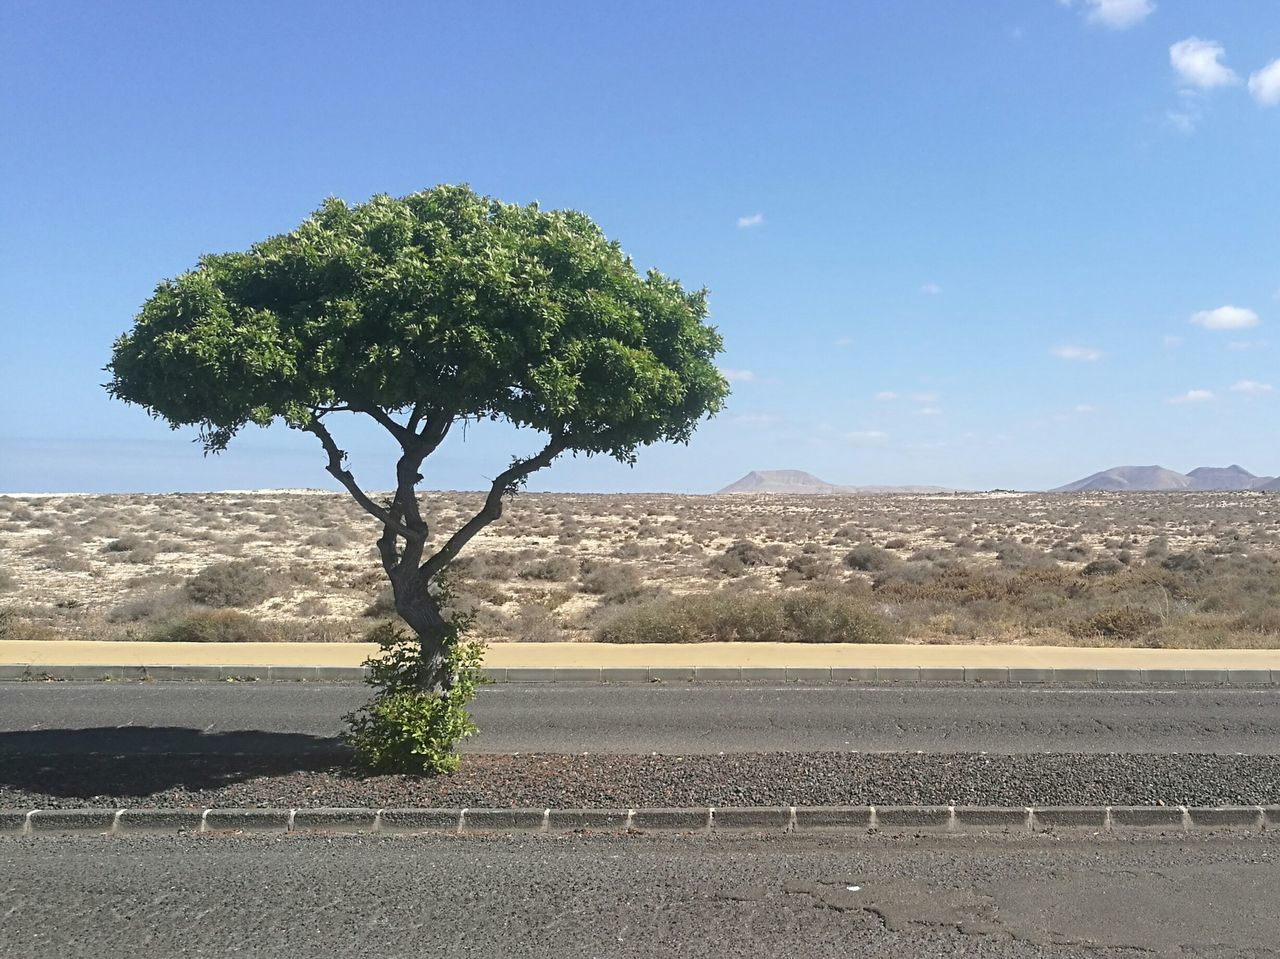 Tree Sky Beauty In Nature Scenics Nature Tranquility Landscape No People Outdoors Mountain Day Contrast Contrasting Landscape Sand Desert Volcanic Landscape Canary Islands Corralejo Beauty In Nature Desert Nature Arid Climate The Great Outdoors - 2017 EyeEm Awards The Street Photographer - 2017 EyeEm Awards